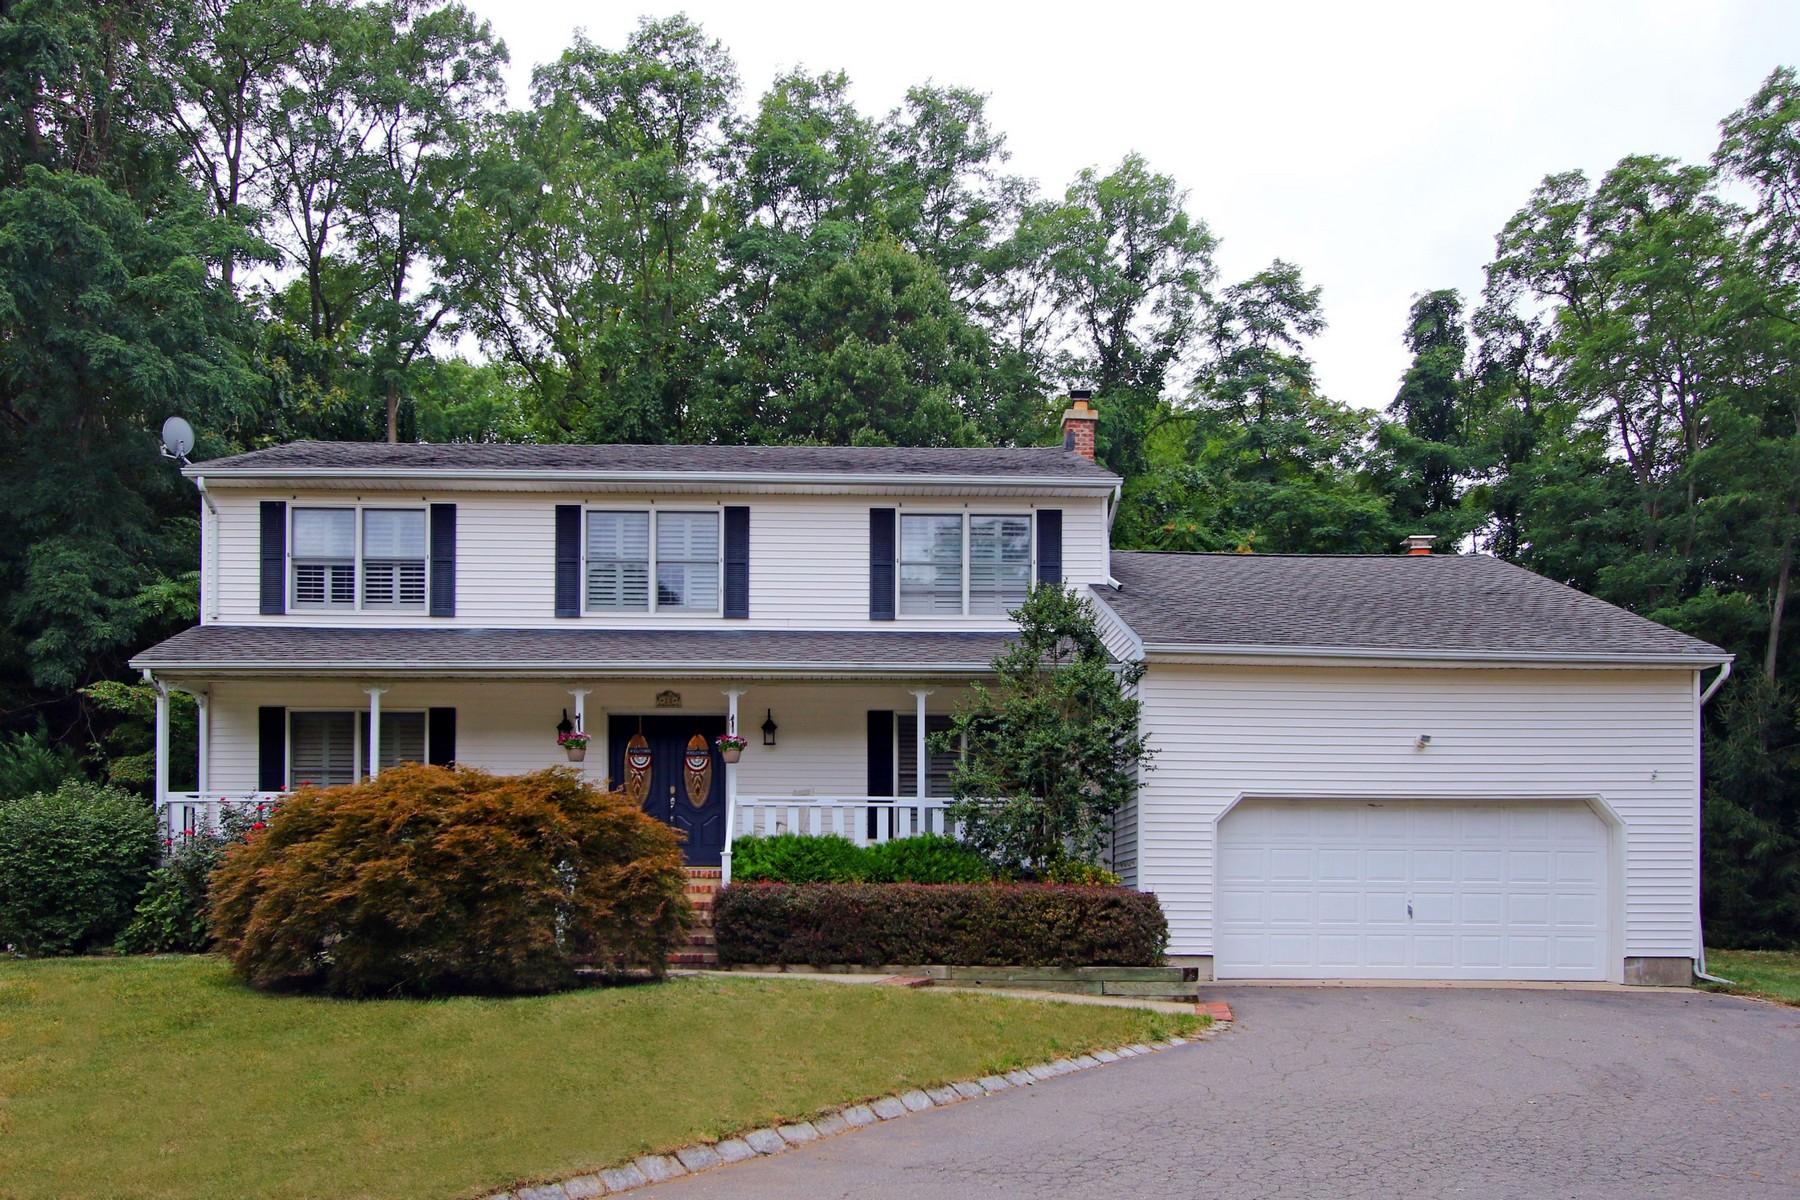 Single Family Home for Sale at Lovely Colonial on Cul de sac 20 Village Green Ct. Middletown, 07748 United States